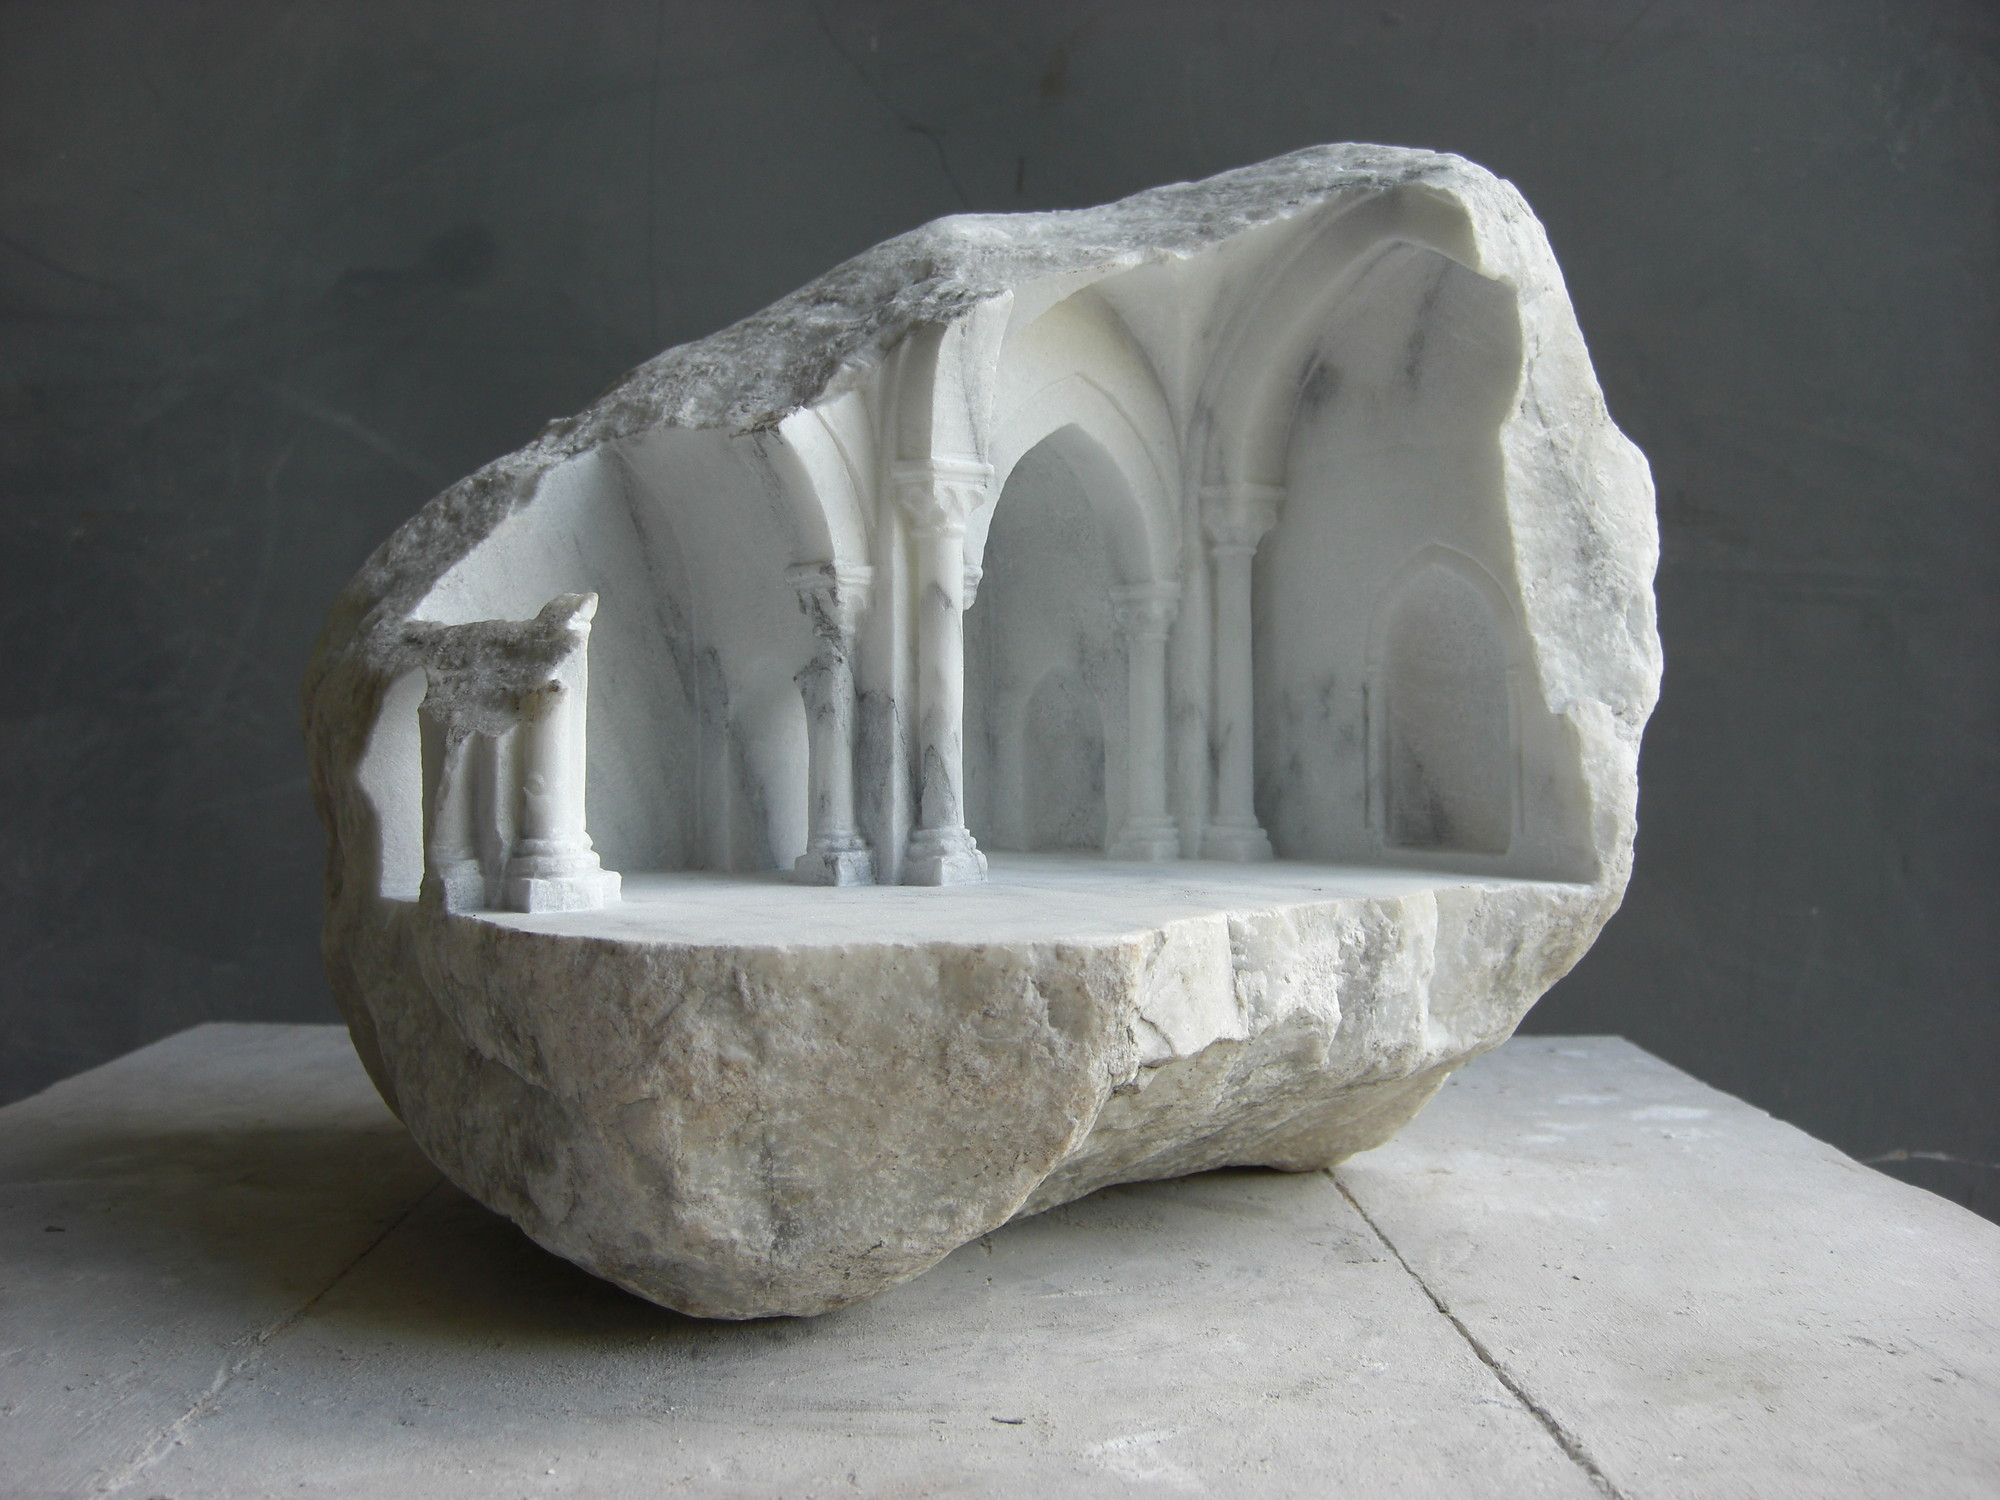 Gallery Of Miniature Spaces Carved From Stone 2